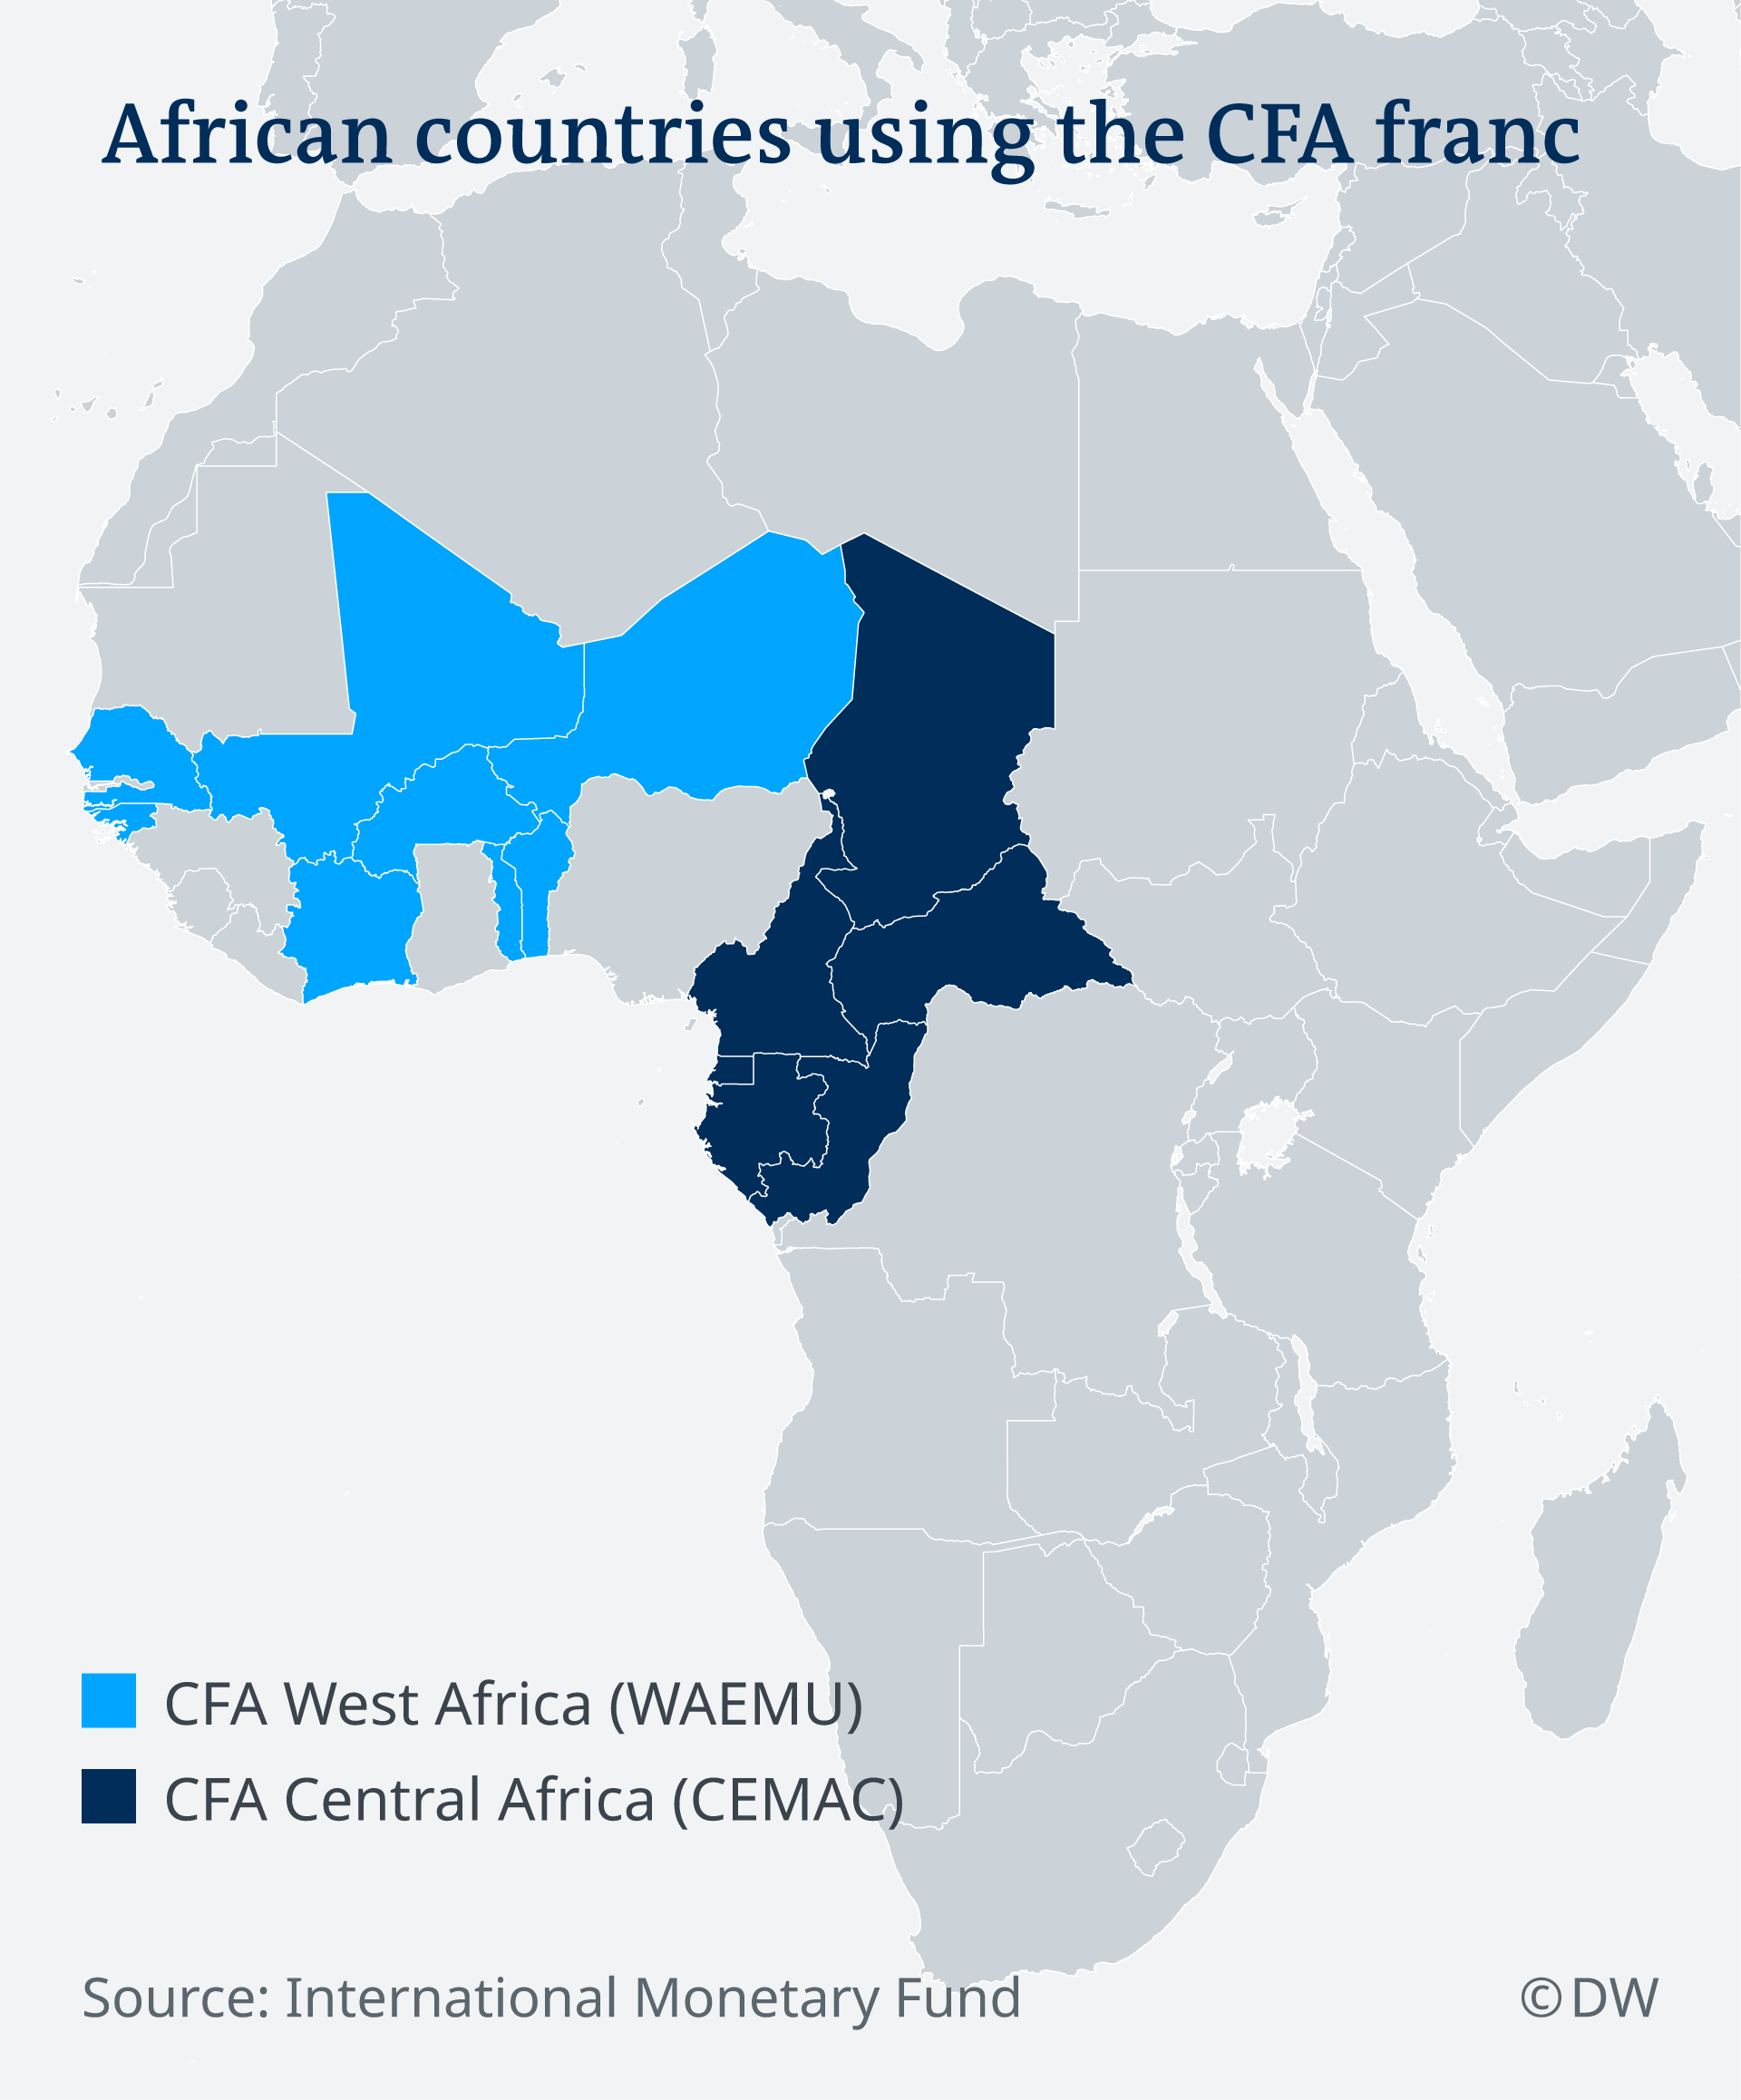 Map showing the countries that use the CFA franc